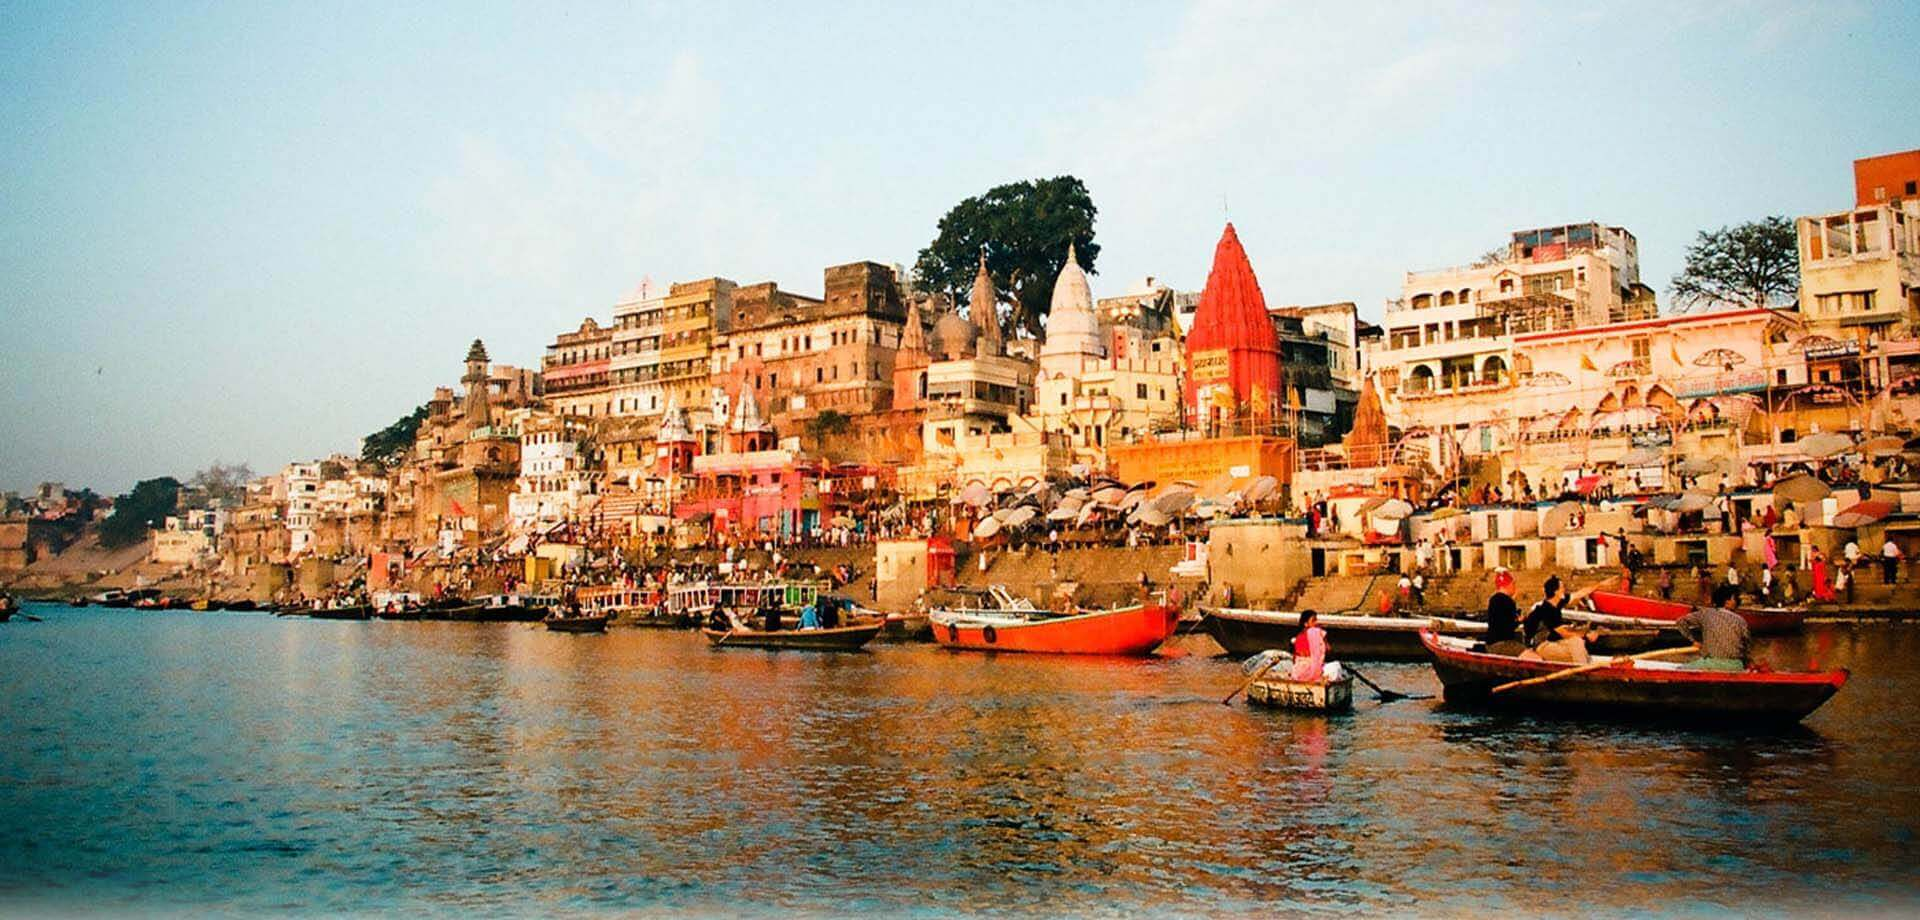 Book Spiritual tour of Varanasi